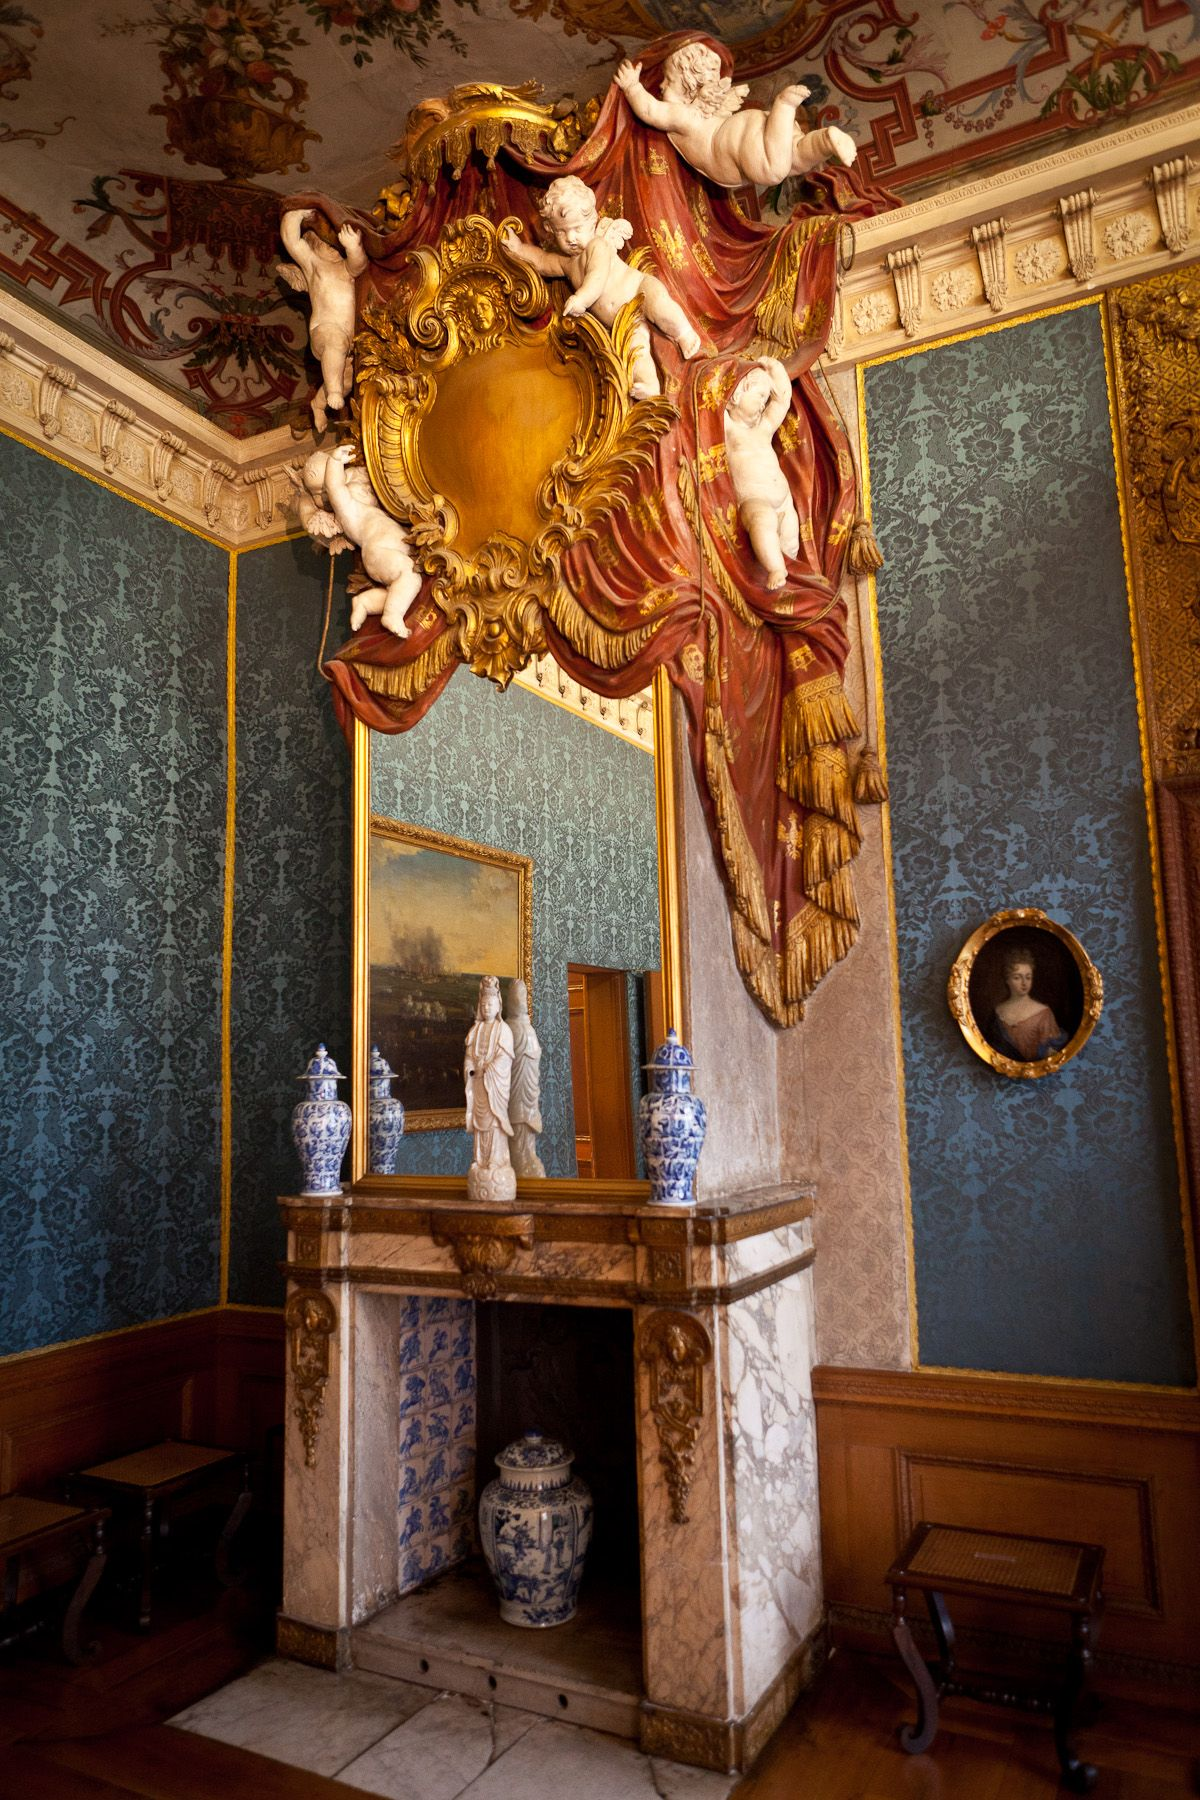 Charlottenburg palace. | Historic Interior Spaces | Pinterest | Häuschen